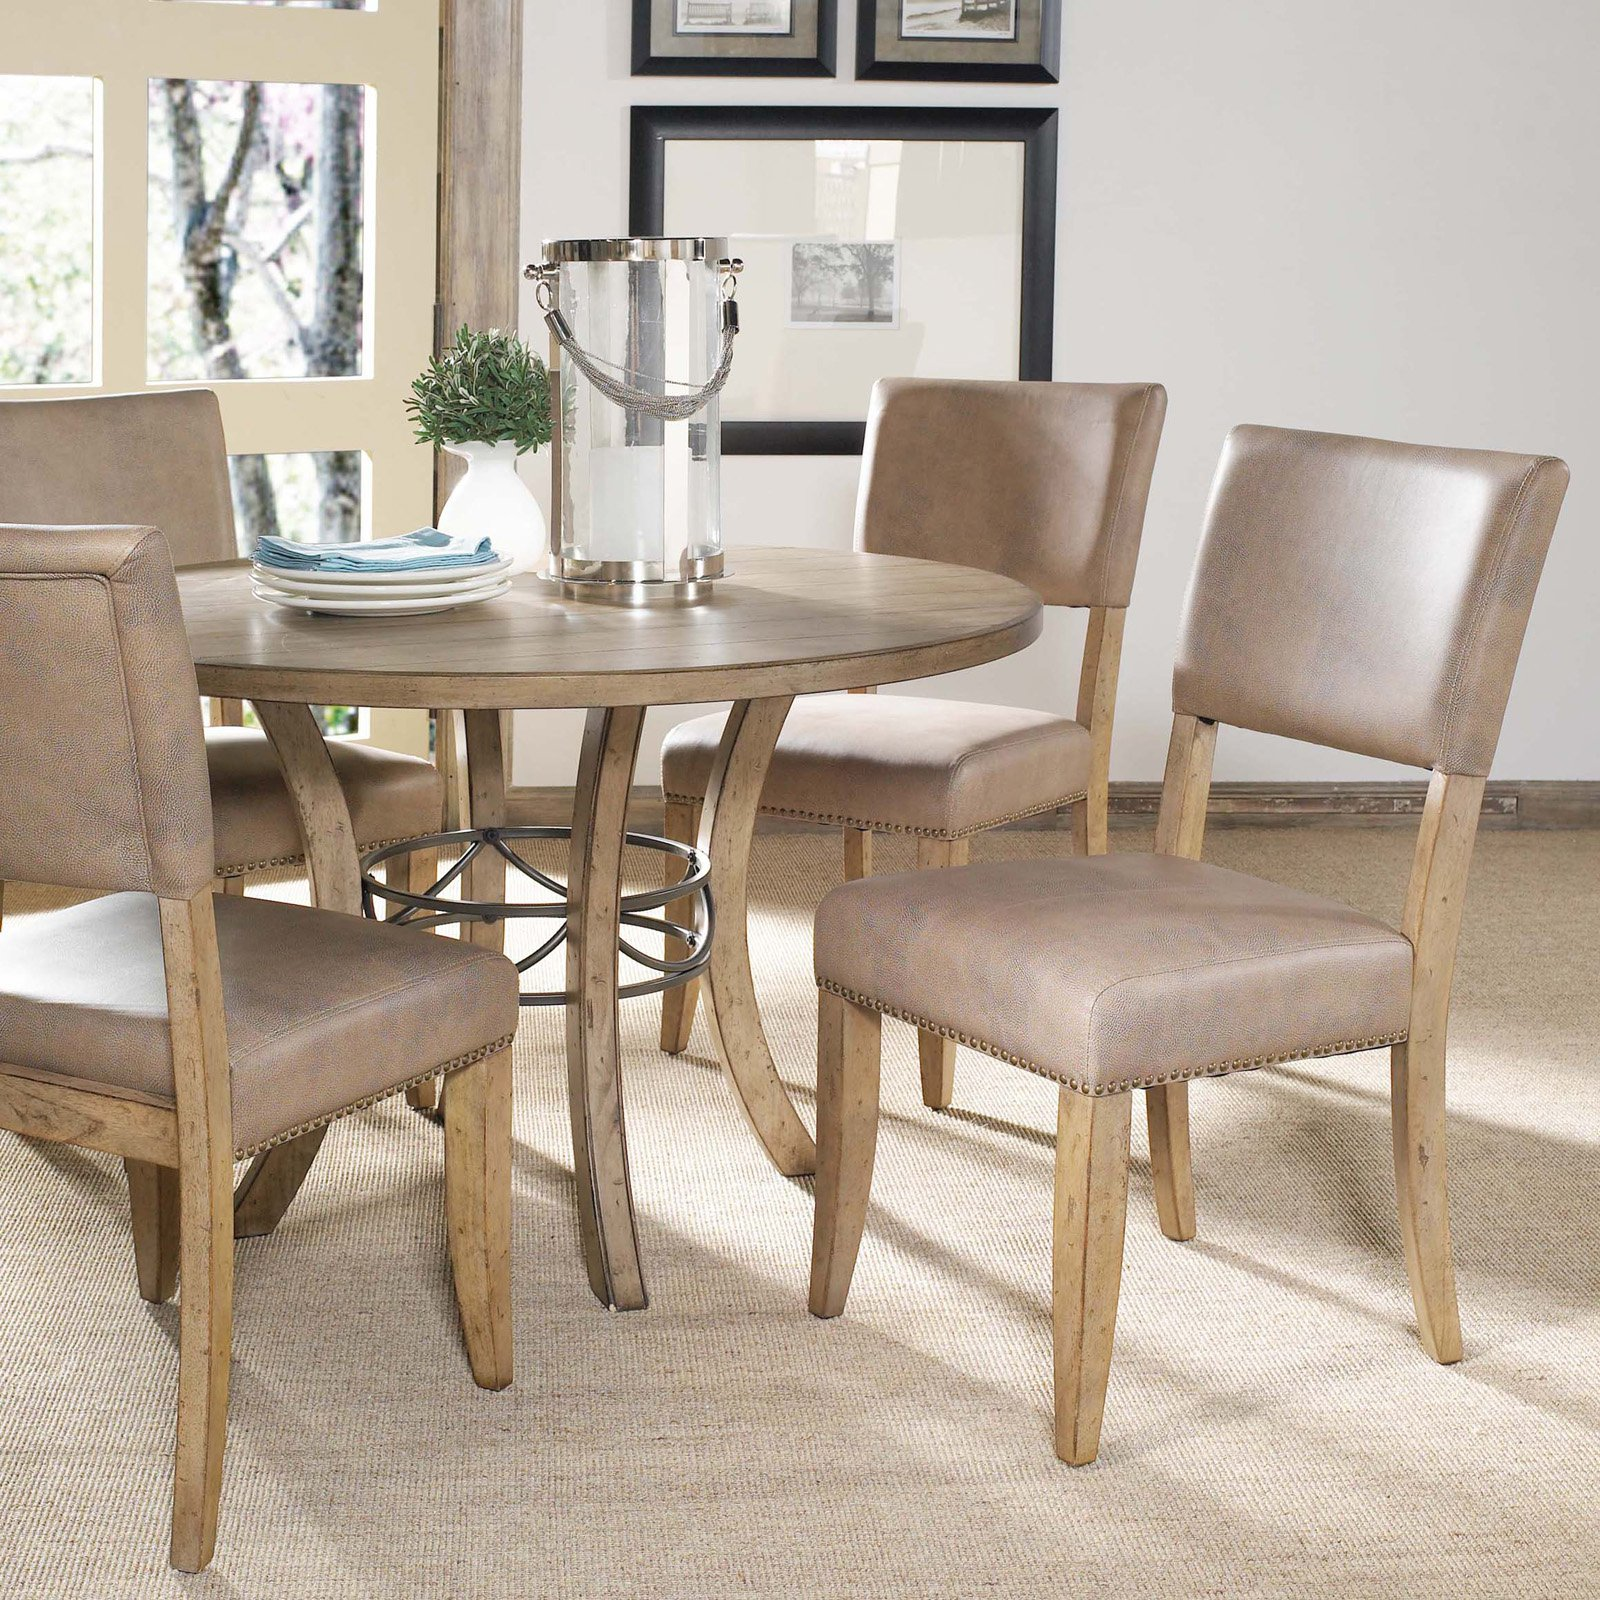 Hillsdale Charleston 5 Piece Round Desert Tan Wood Dining Set with Parson Chairs